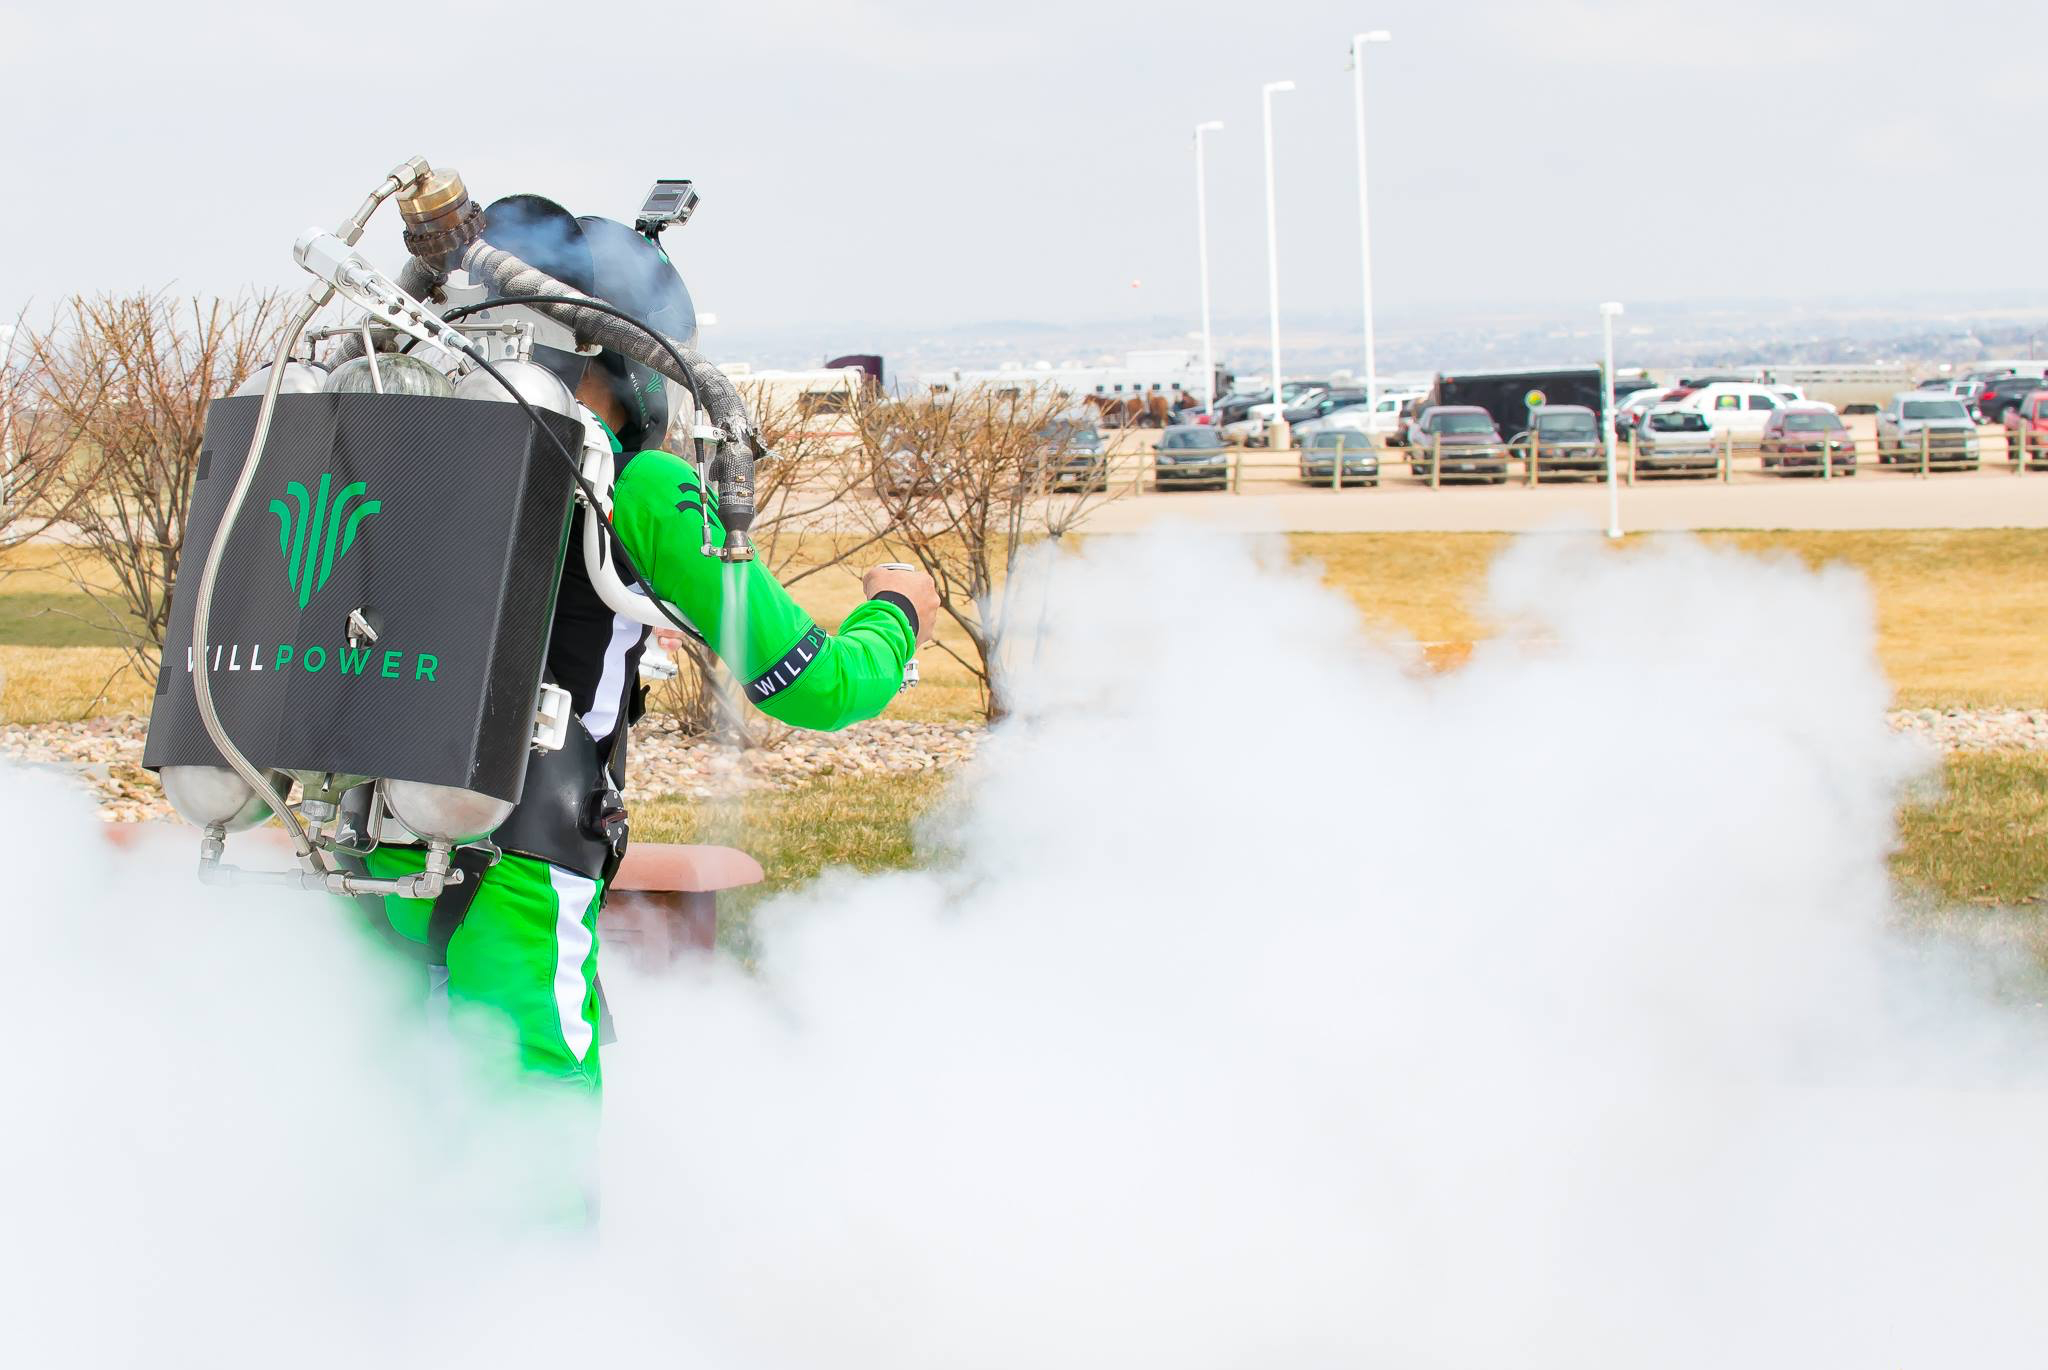 Hemp jetpack launched by Willpower Products